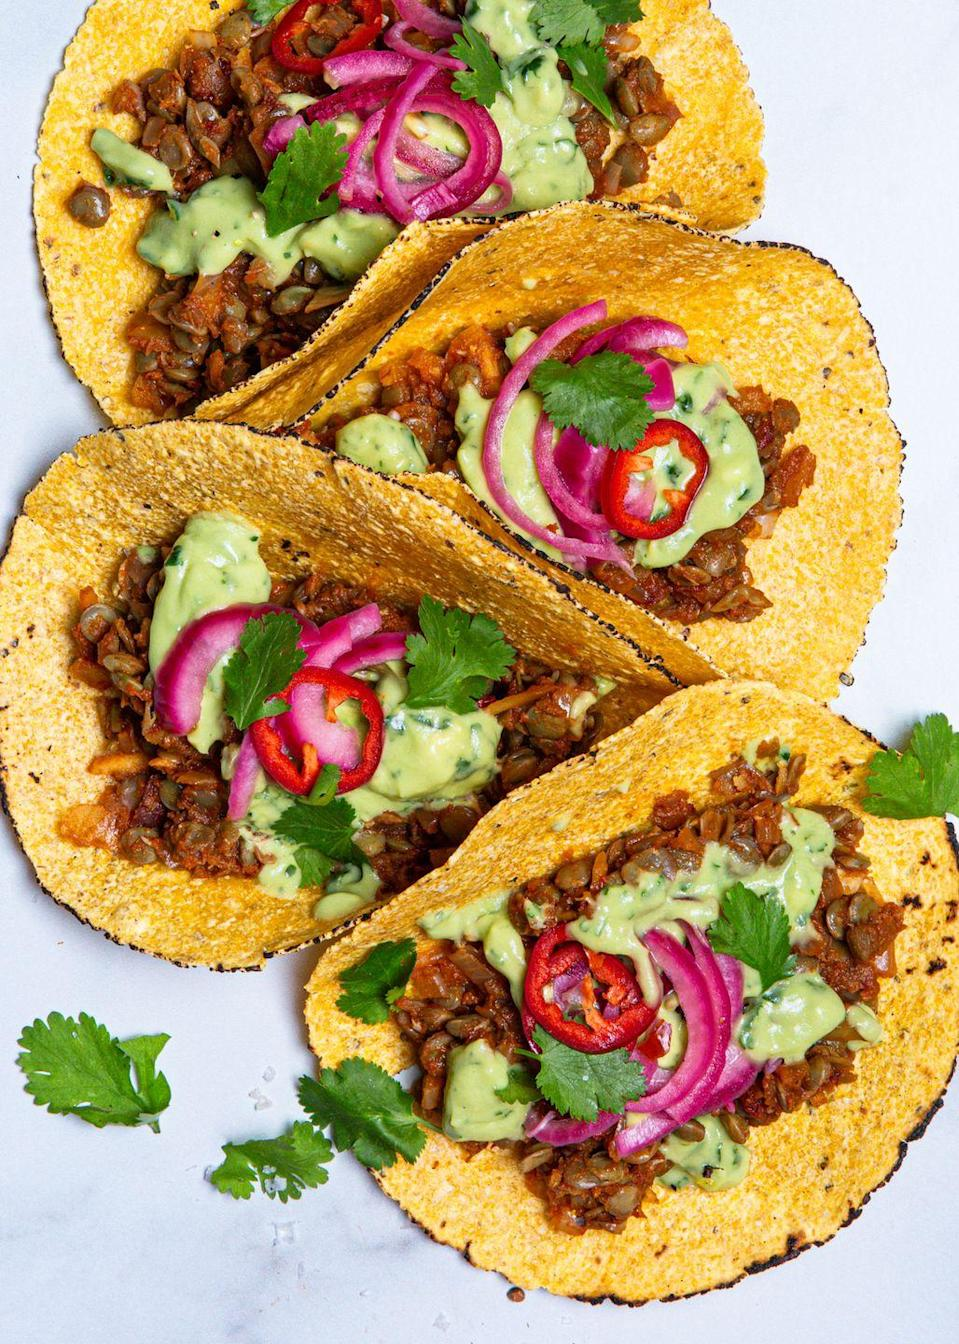 "<p>These are incredible.</p><p>Get the recipe from <a href=""https://www.delish.com/cooking/recipe-ideas/a32293305/vegan-tacos-recipe/"" rel=""nofollow noopener"" target=""_blank"" data-ylk=""slk:Delish"" class=""link rapid-noclick-resp"">Delish</a>.</p>"